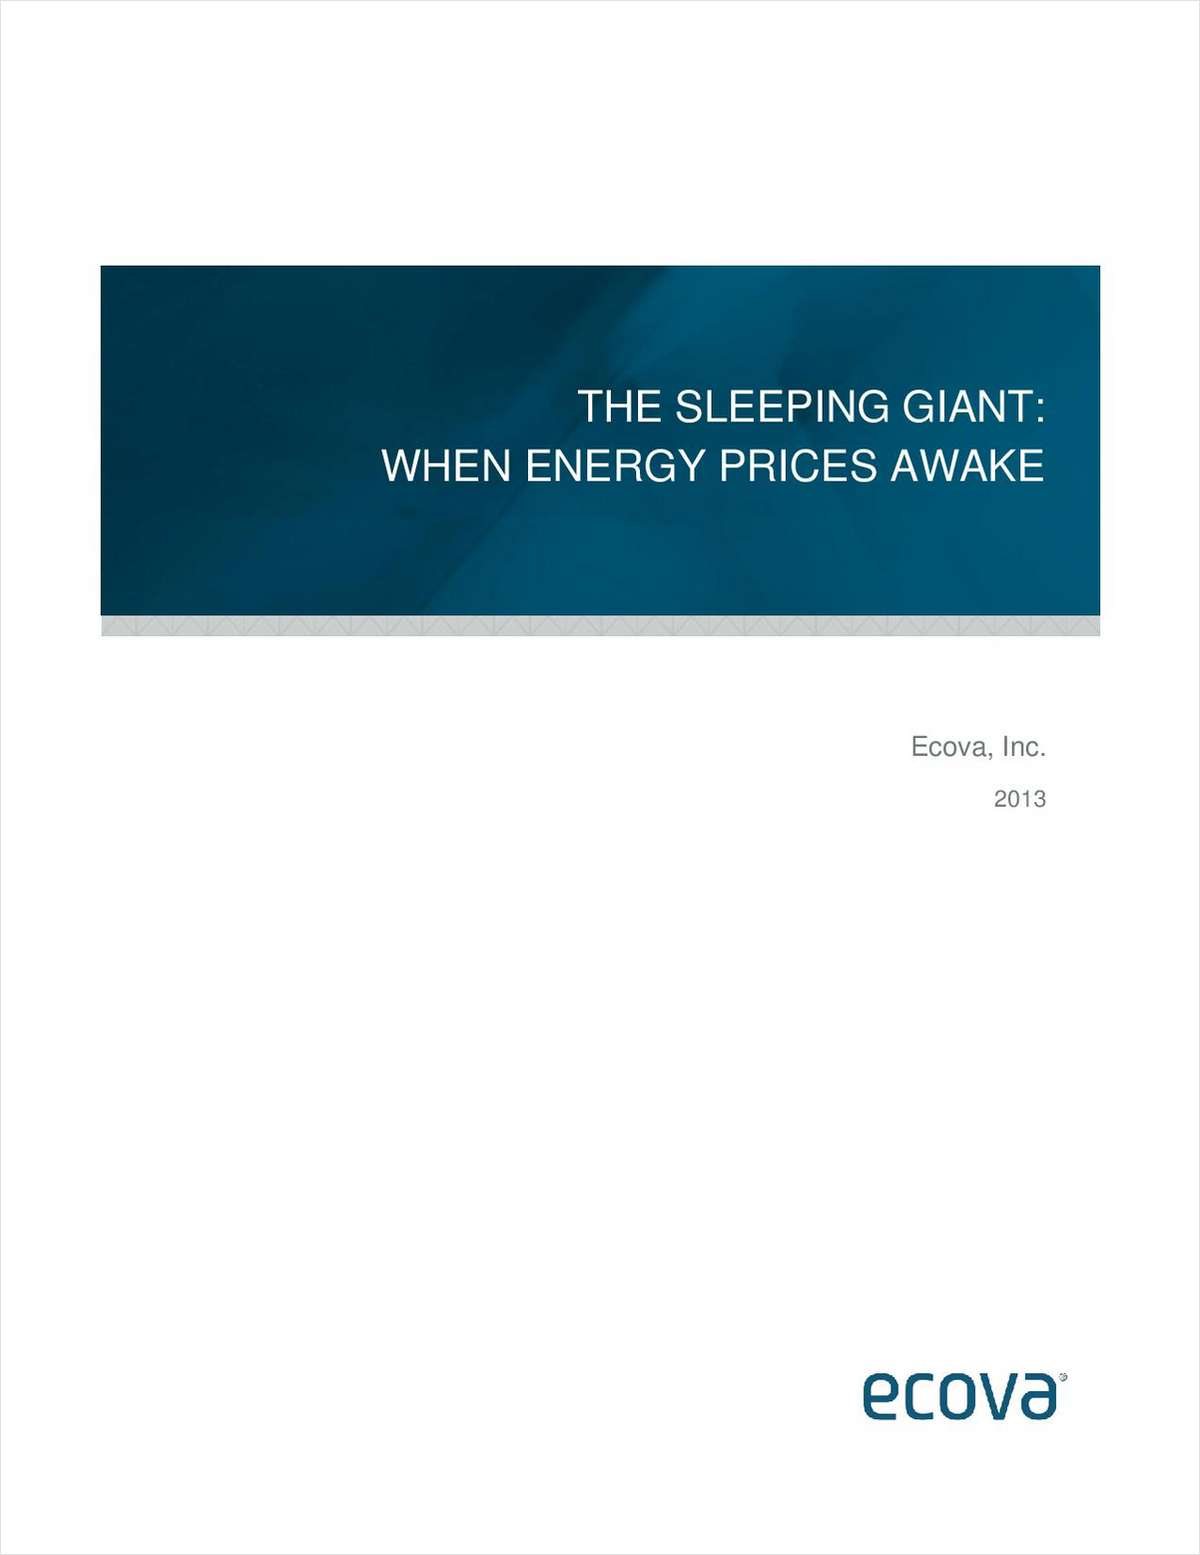 The Sleeping Giant – When Energy Prices Awake